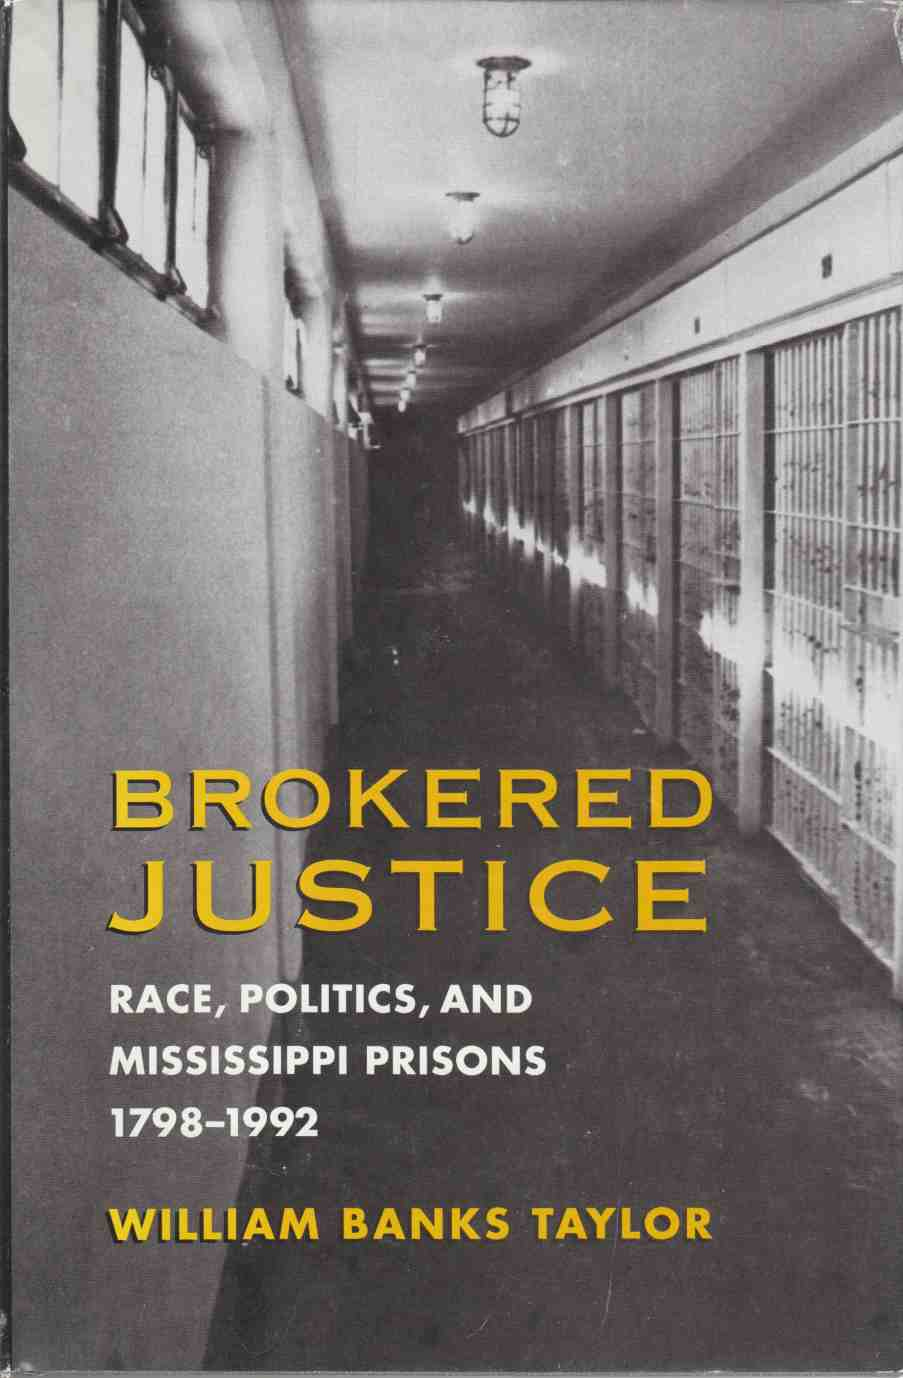 Image for Brokered Justice:  Race, Politics, and Mississippi Prisons 1798-1992